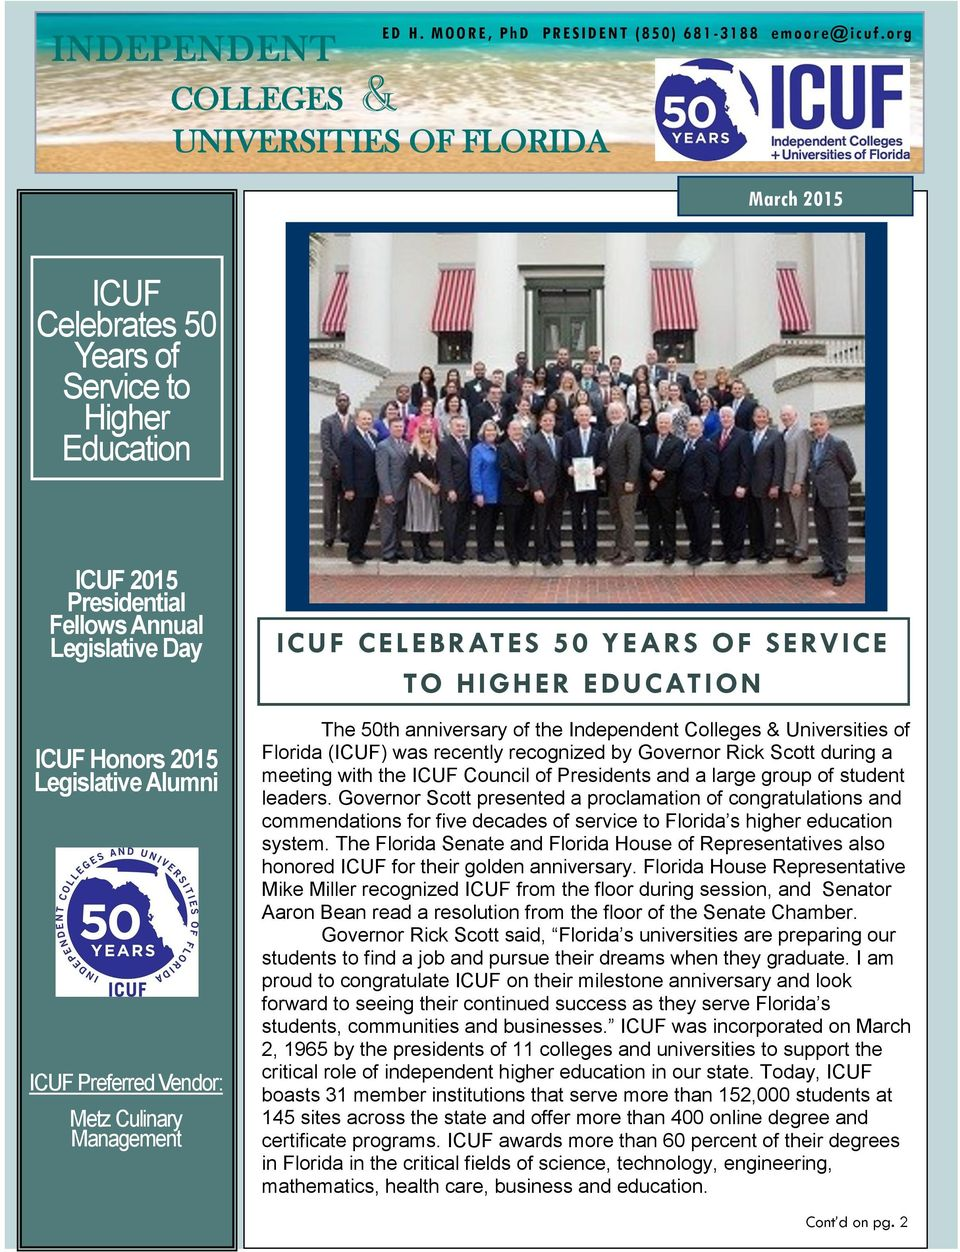 Preferred Vendor: Metz Culinary Management ICUF CELEBRATES 50 YEARS OF SERVICE TO HIGHER EDUCATION The 50th anniversary of the Independent Colleges & Universities of Florida (ICUF) was recently